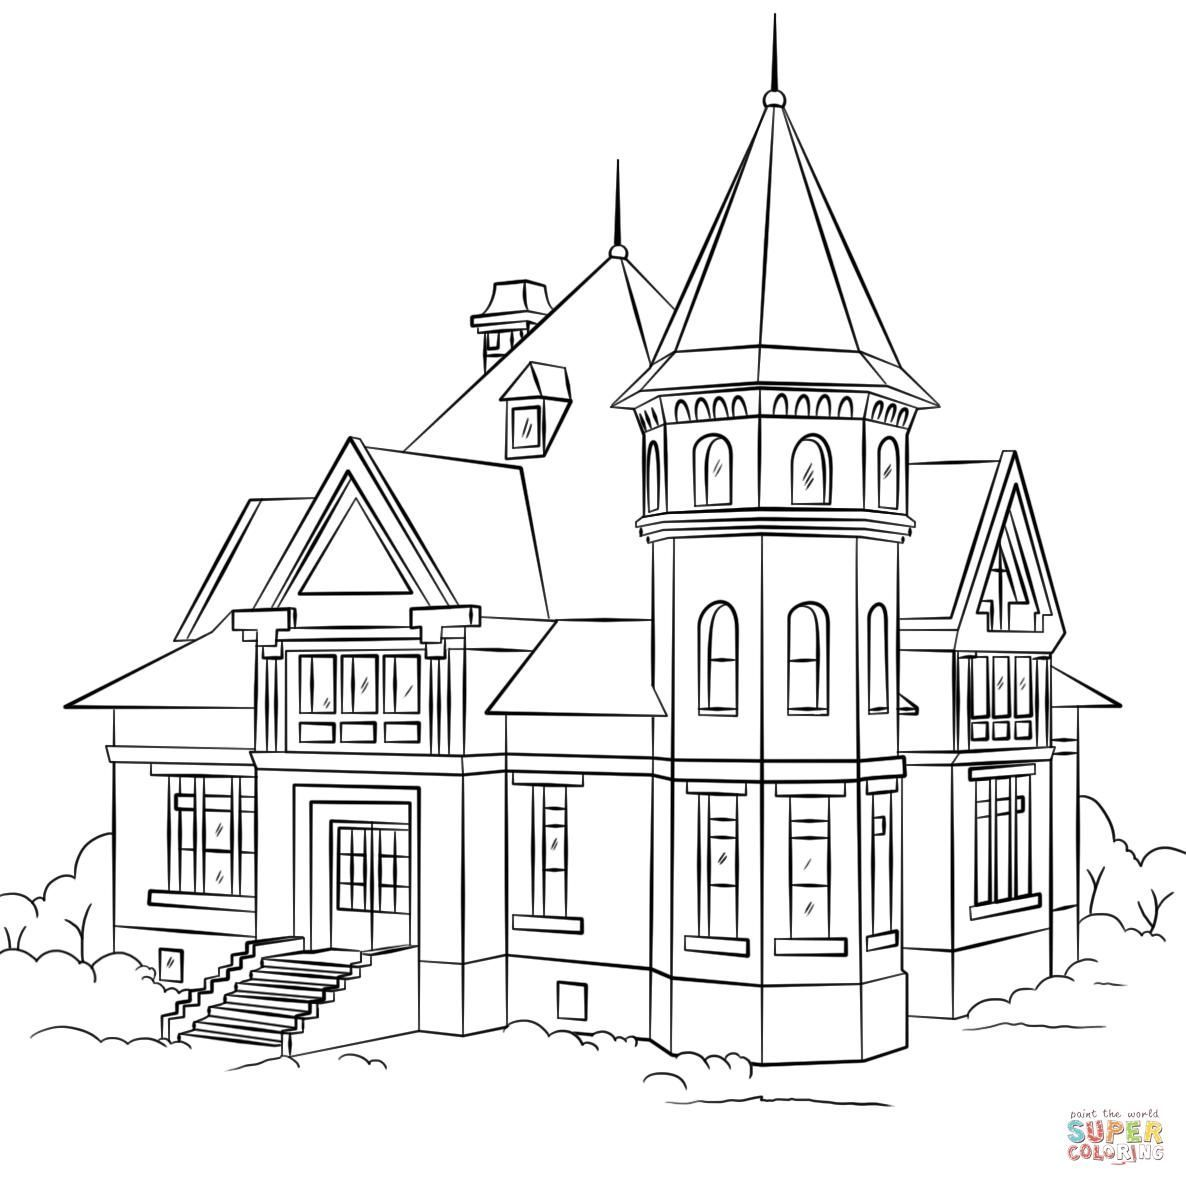 dream house coloring pages inside house coloring pages at getcoloringscom free coloring house dream pages